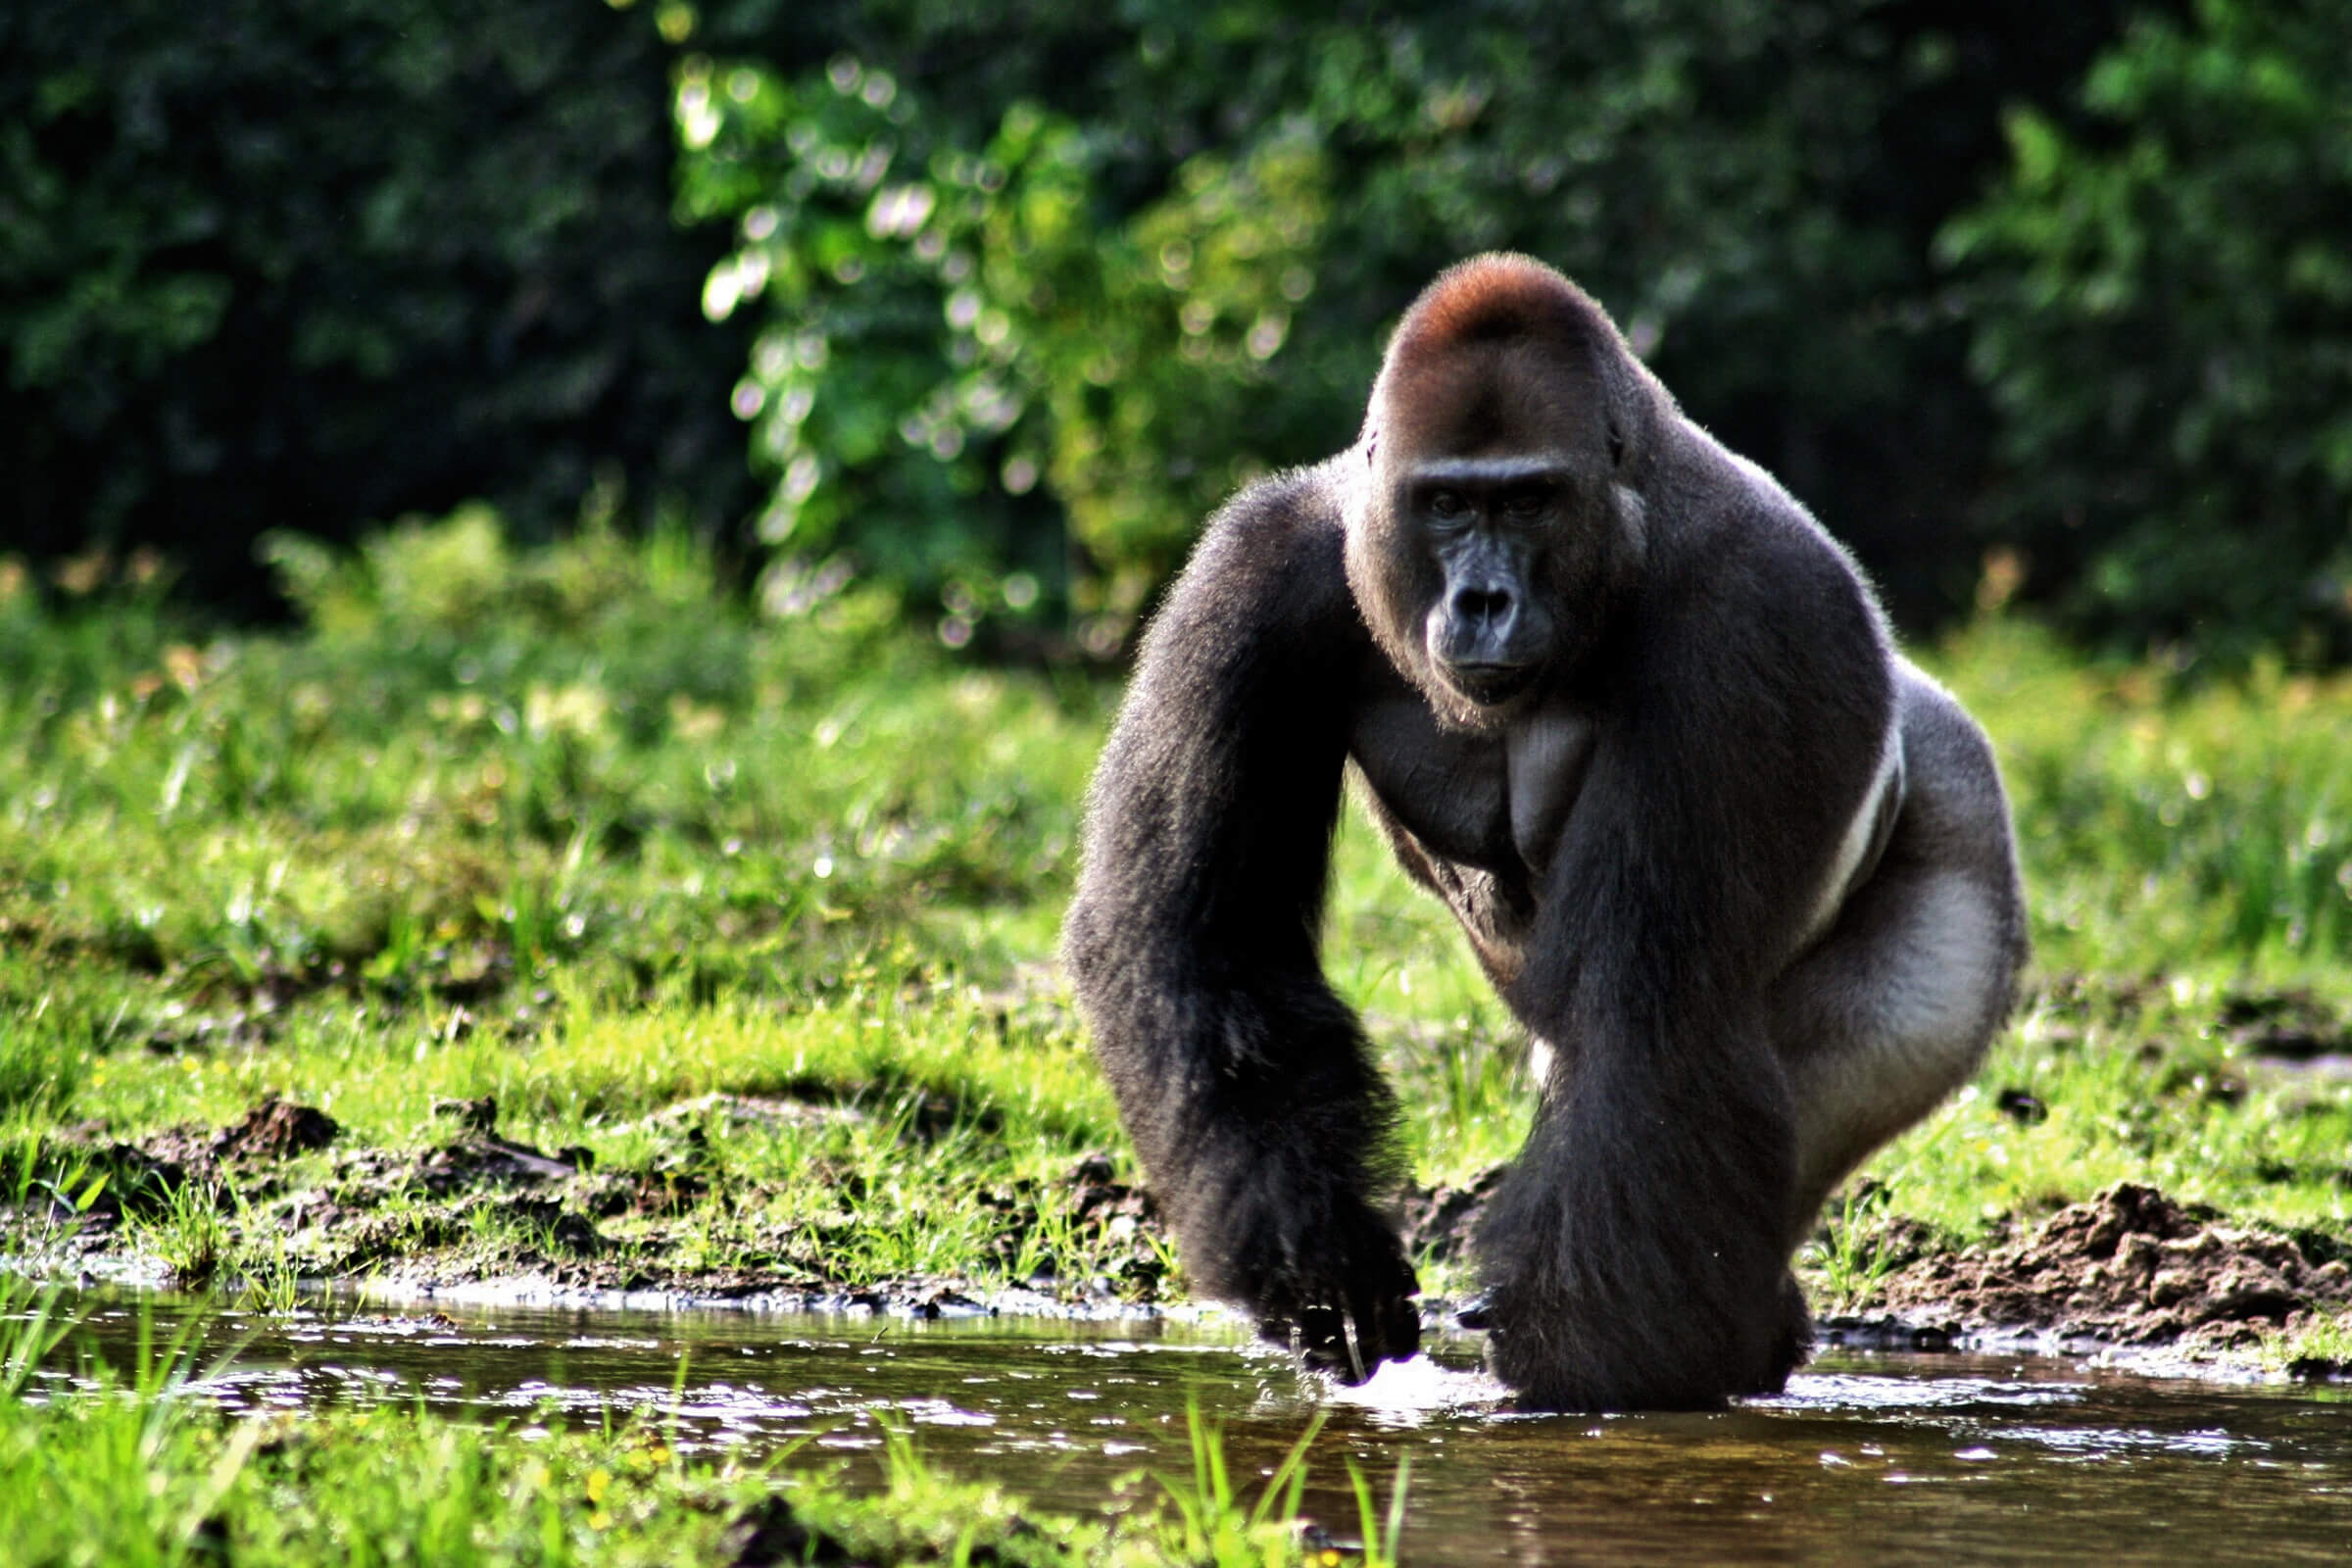 gorillas an endangered species Intelligent, charismatic, and endangered gorillas are our closest living relatives after chimpanzees and bonobos the two gorilla species live in equatorial africa, separated by about 900km of congo basin forest each has a lowland and upland subspecies western gorilla.